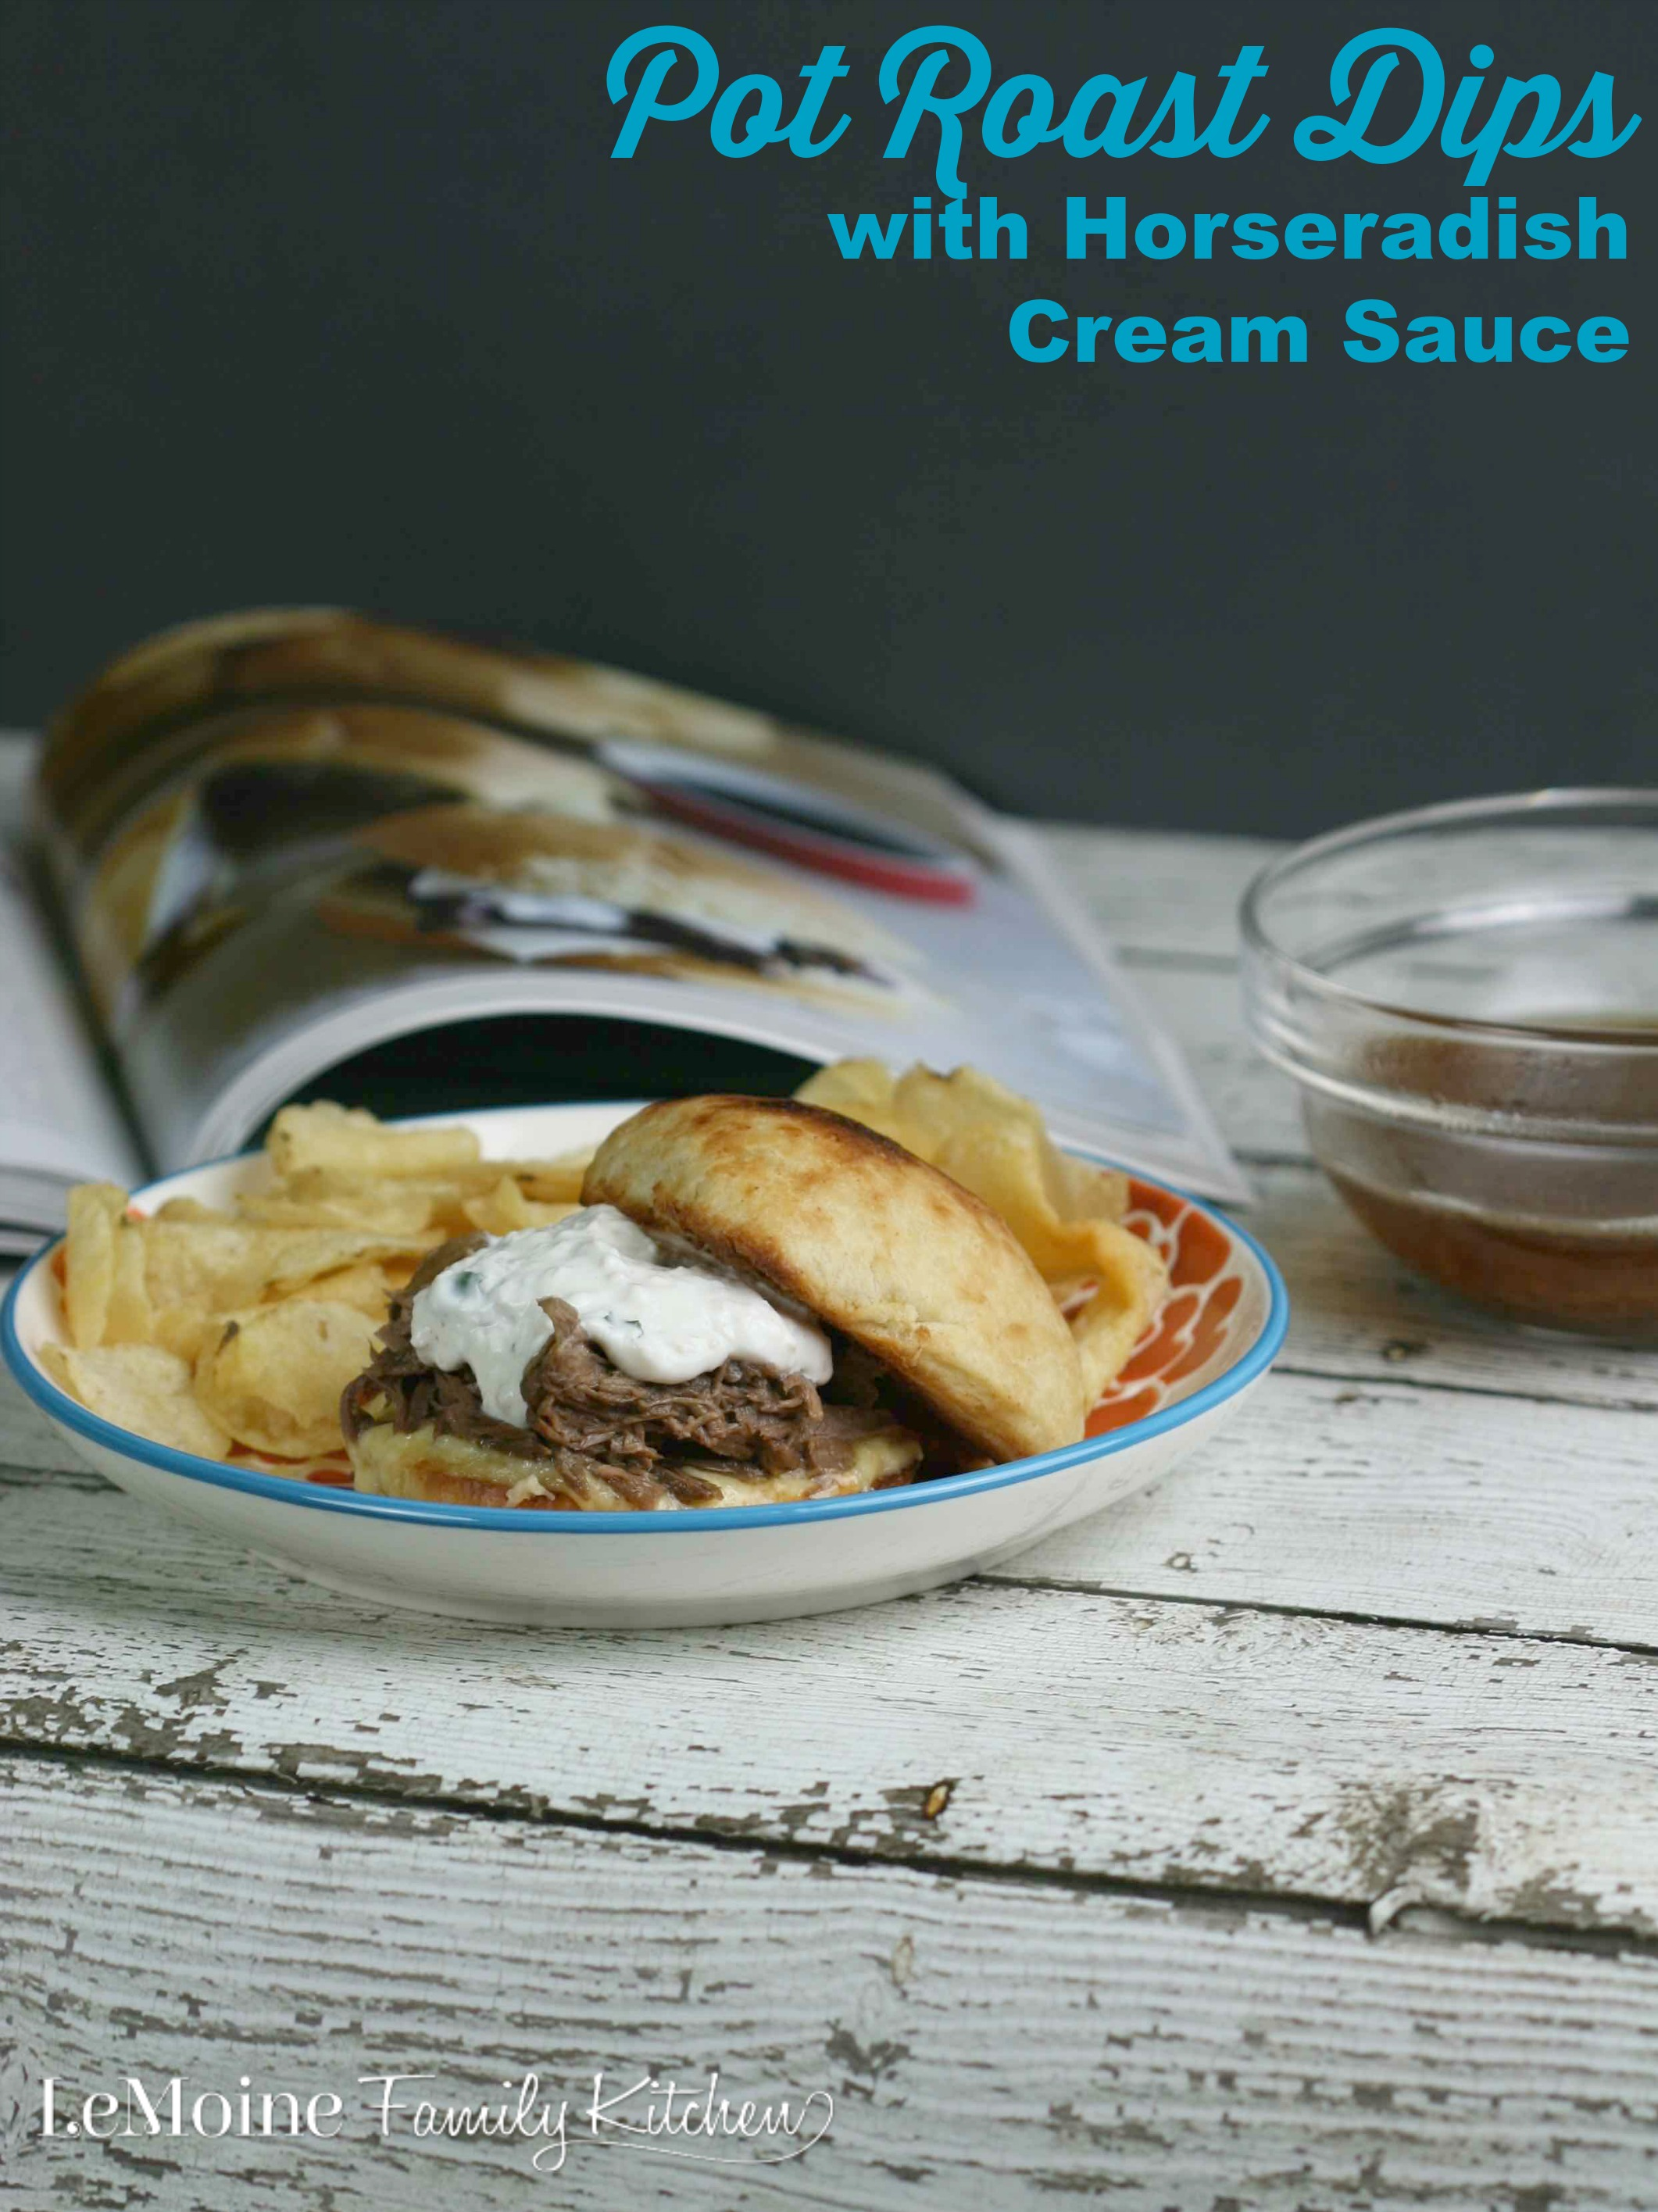 Pot Roast Dips with Horseradish Cream Sauce | LeMoine Family Kitchen. Slow cooked roast with the most delicious au jus from The Magical Slow Cooker cookbook by Sarah Olsen.